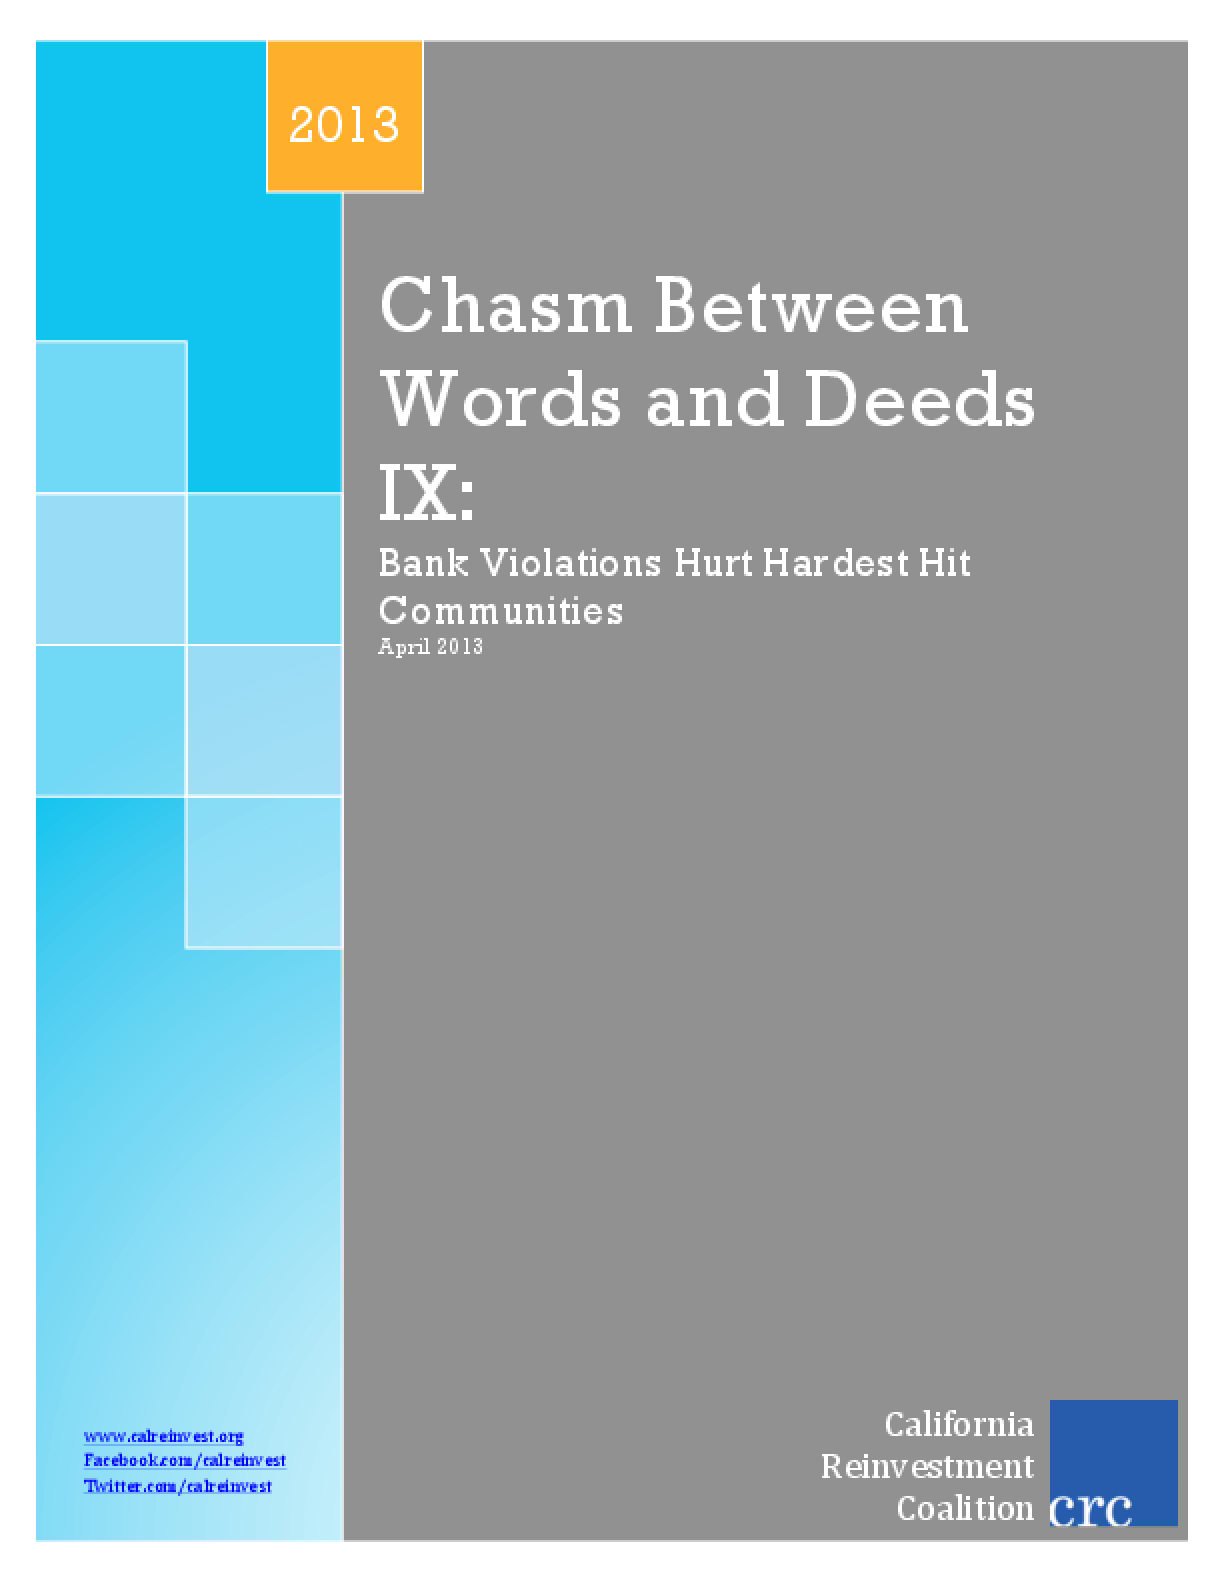 Chasm Between Words and Deeds IX: Bank Violations Hurt Hardest Hit Communities